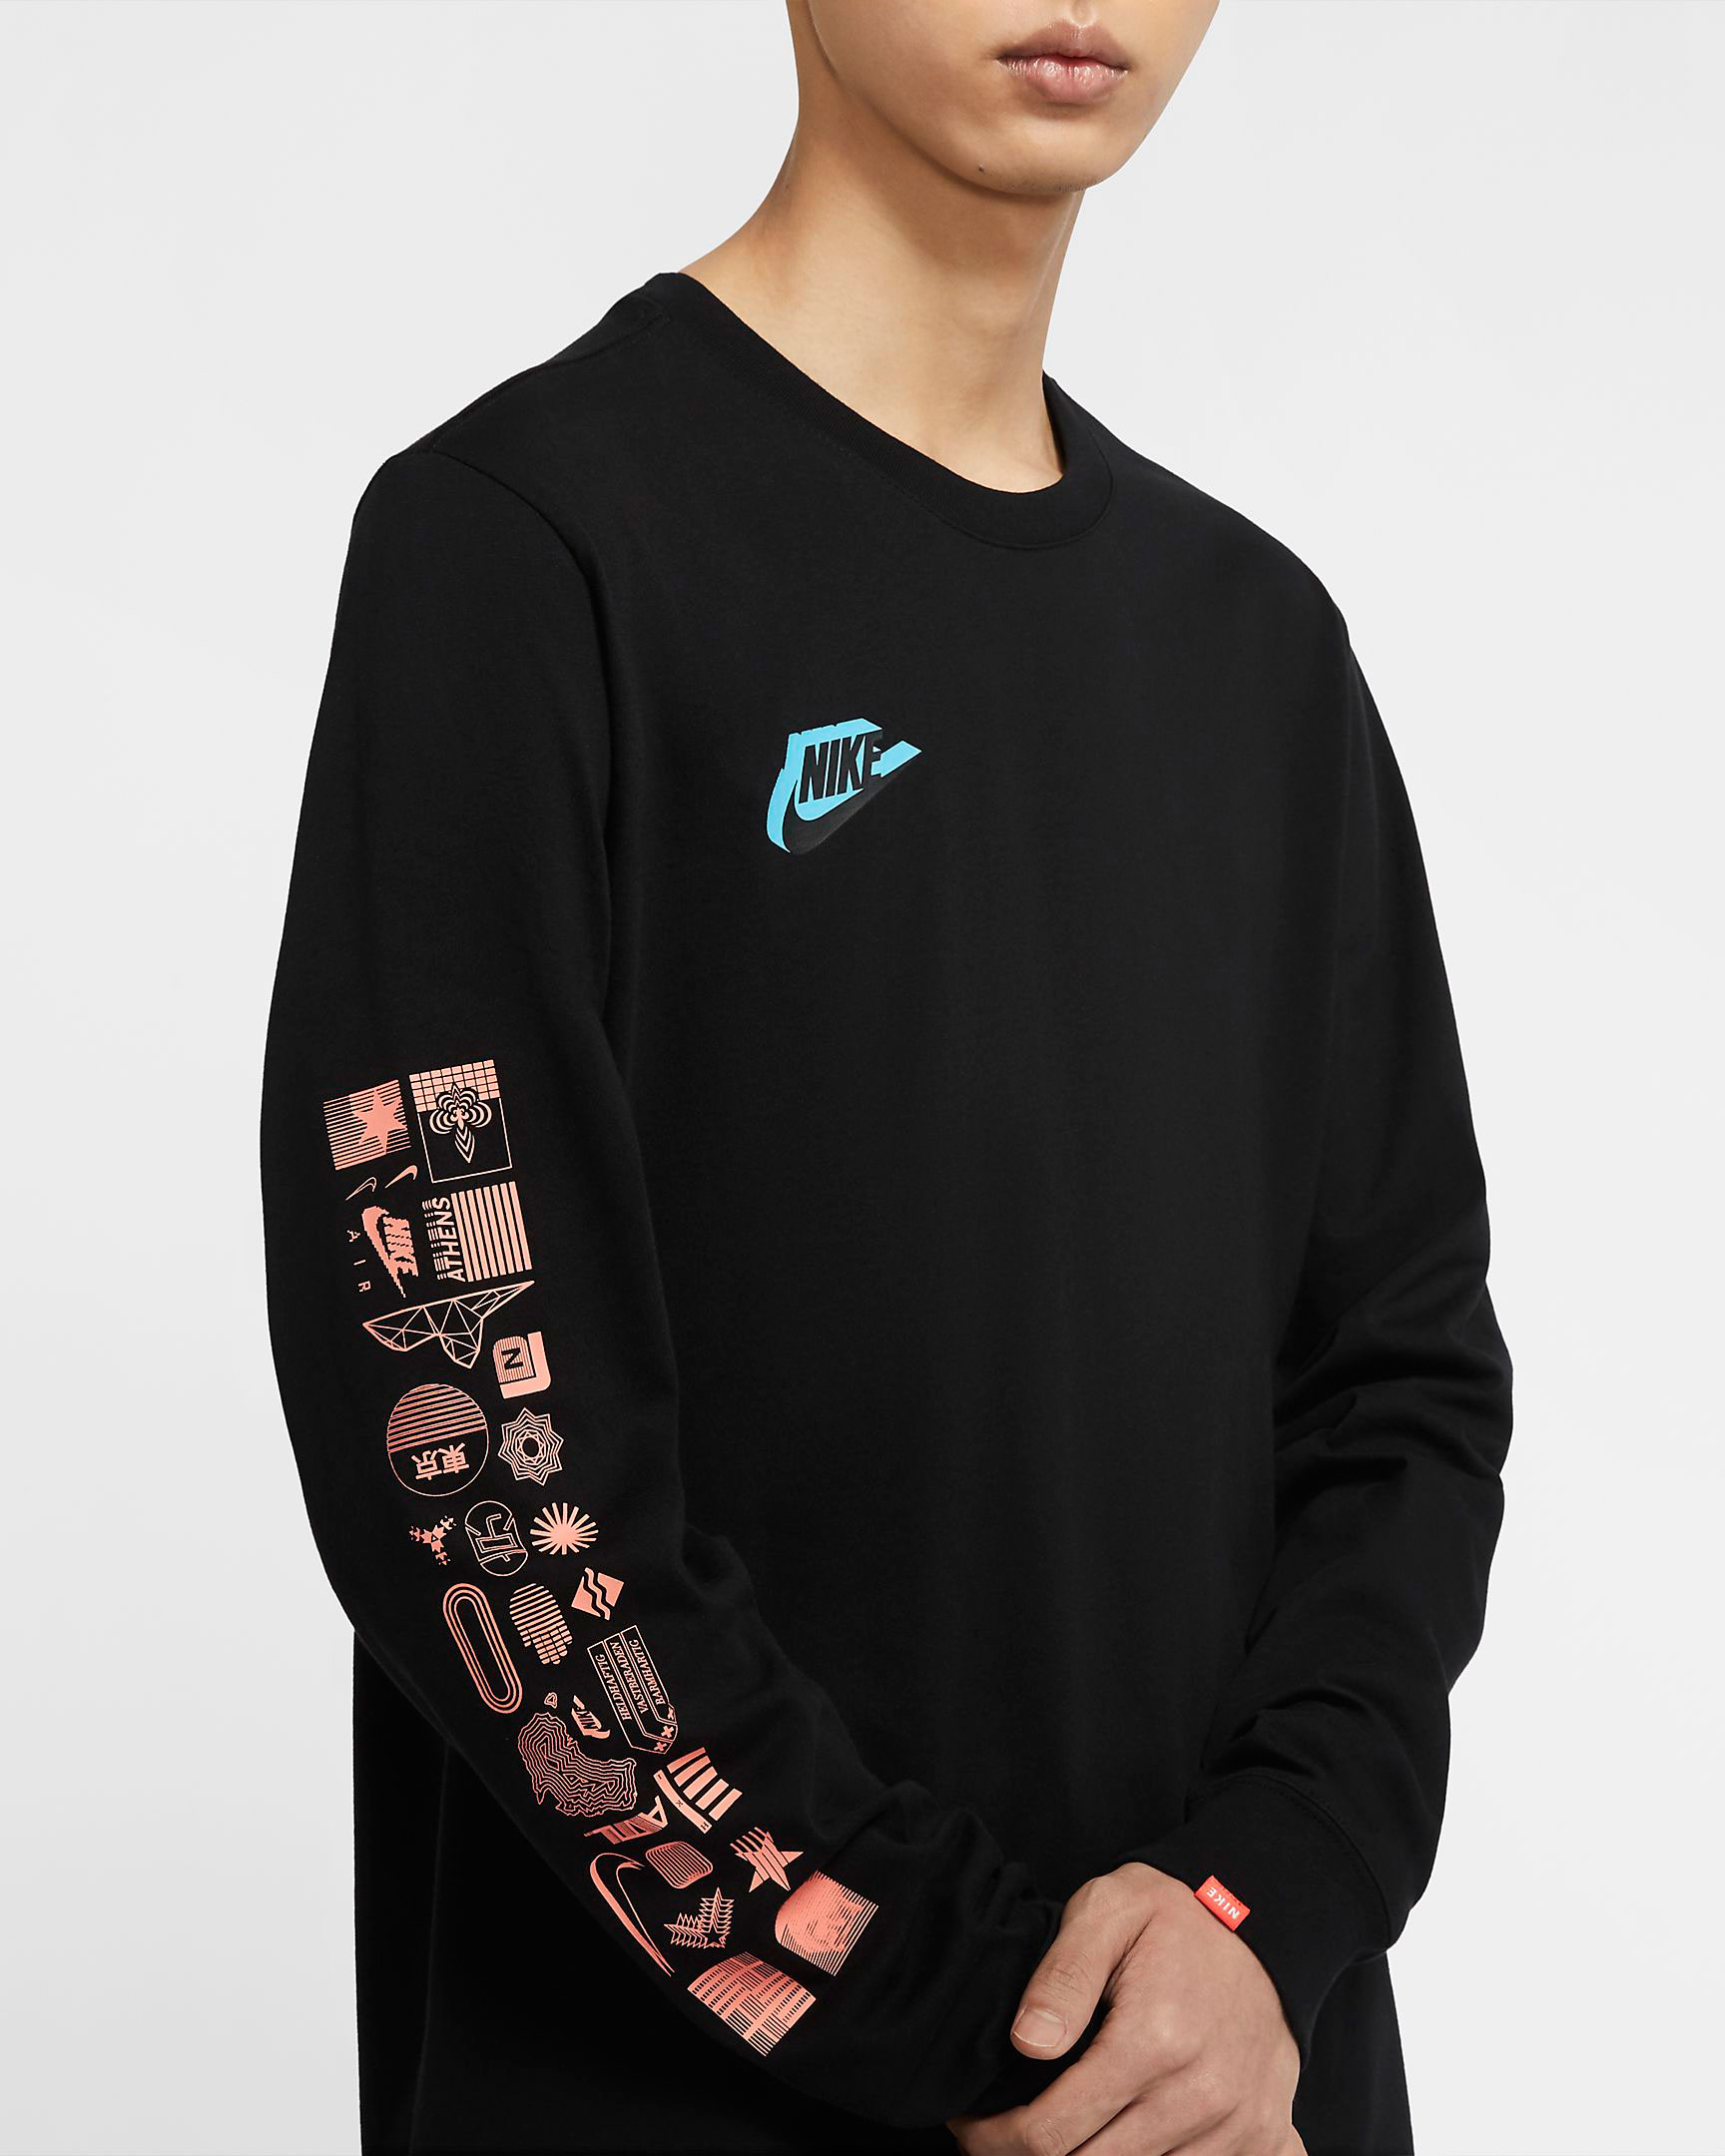 nike-worldwide-long-sleeve-shirt-black-3